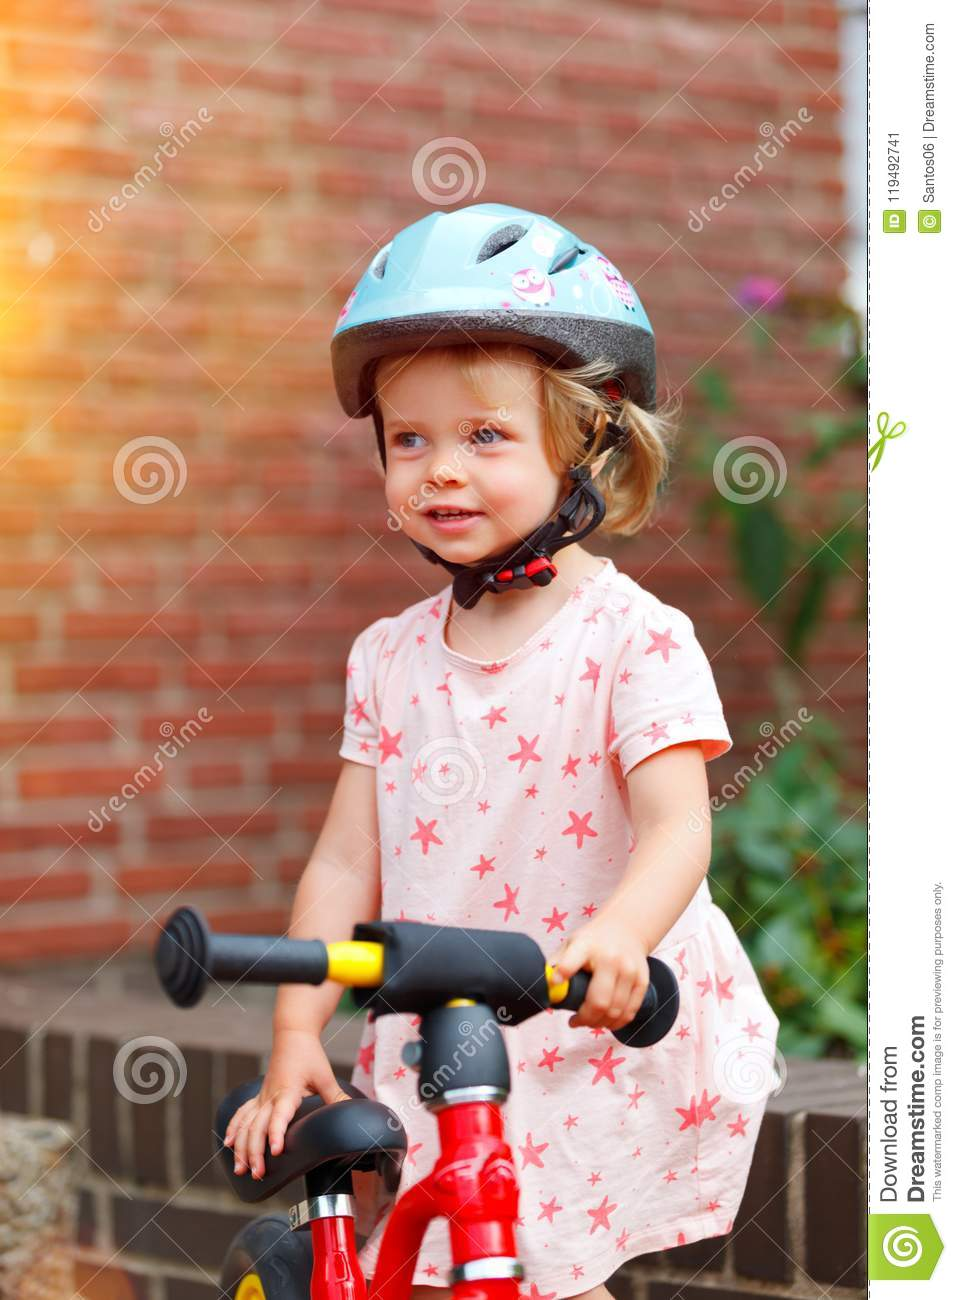 Little girl with a bike